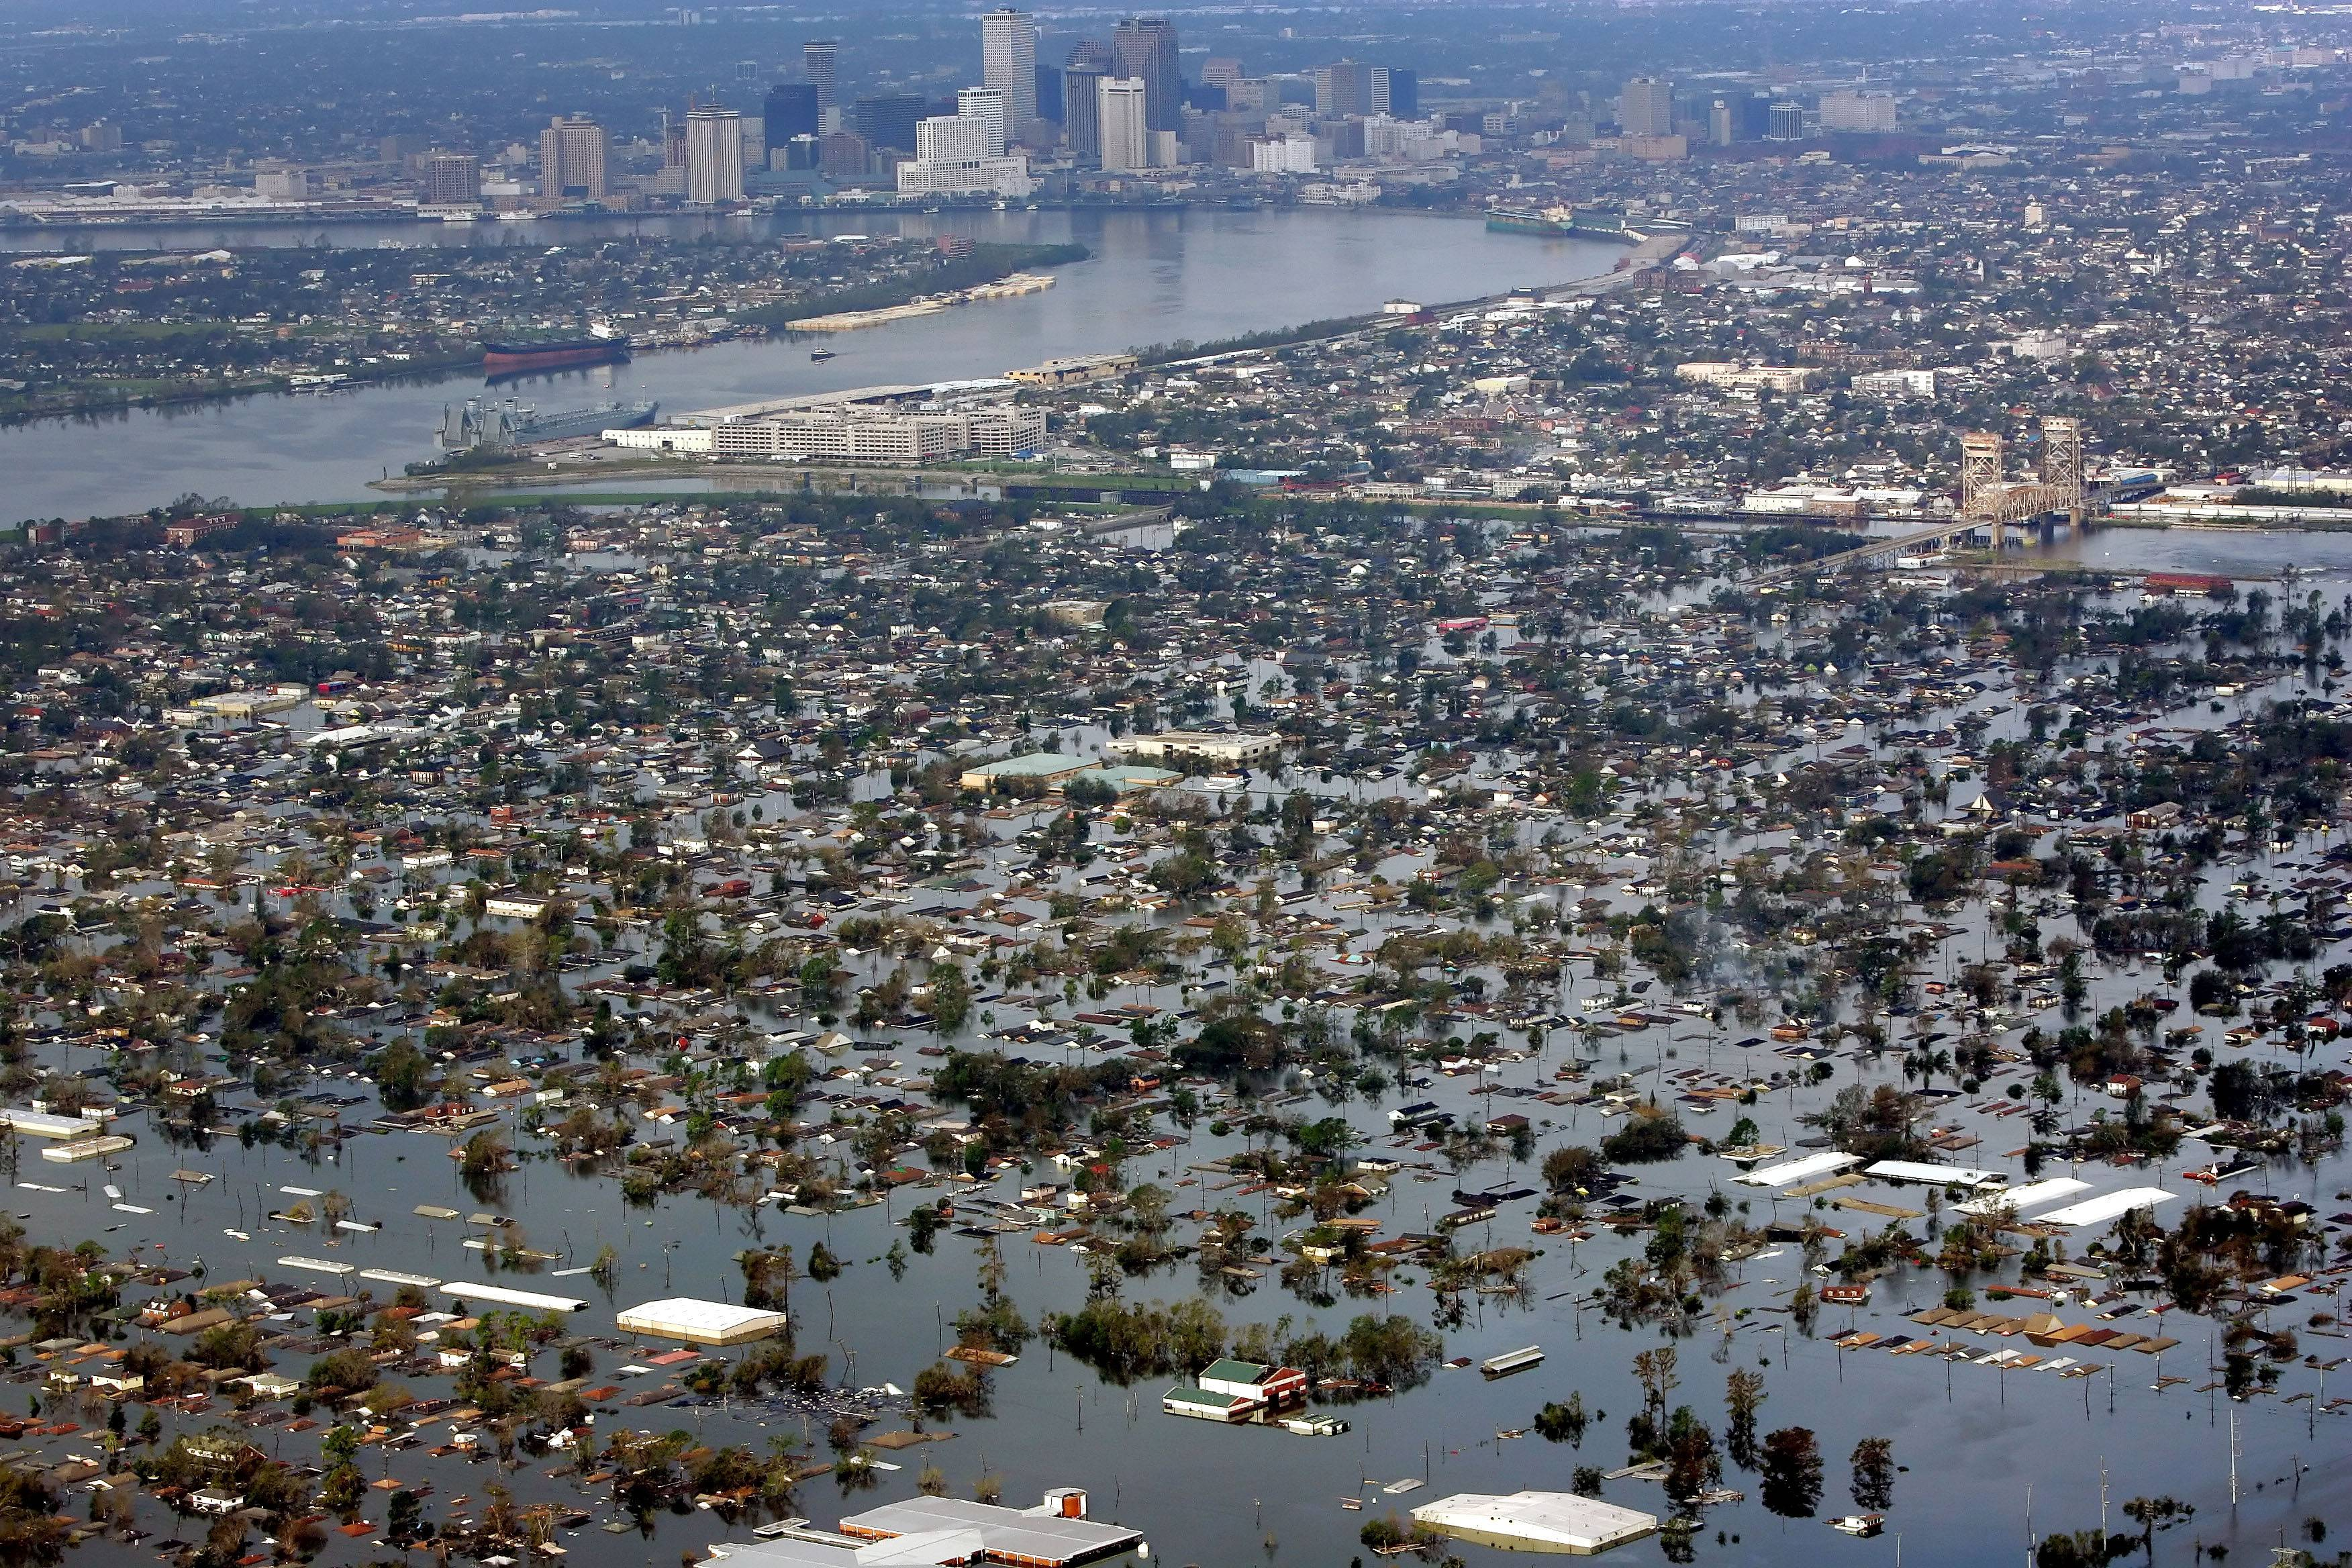 Floodwaters from Hurricane Katrina cover a portion of New Orleans on Aug. 30, 2005. A new psychology study shows people are less prone to flee hurricanes with feminine names. Yet the study finds female named storms have been deadlier in the United States than their macho sounding counterparts.